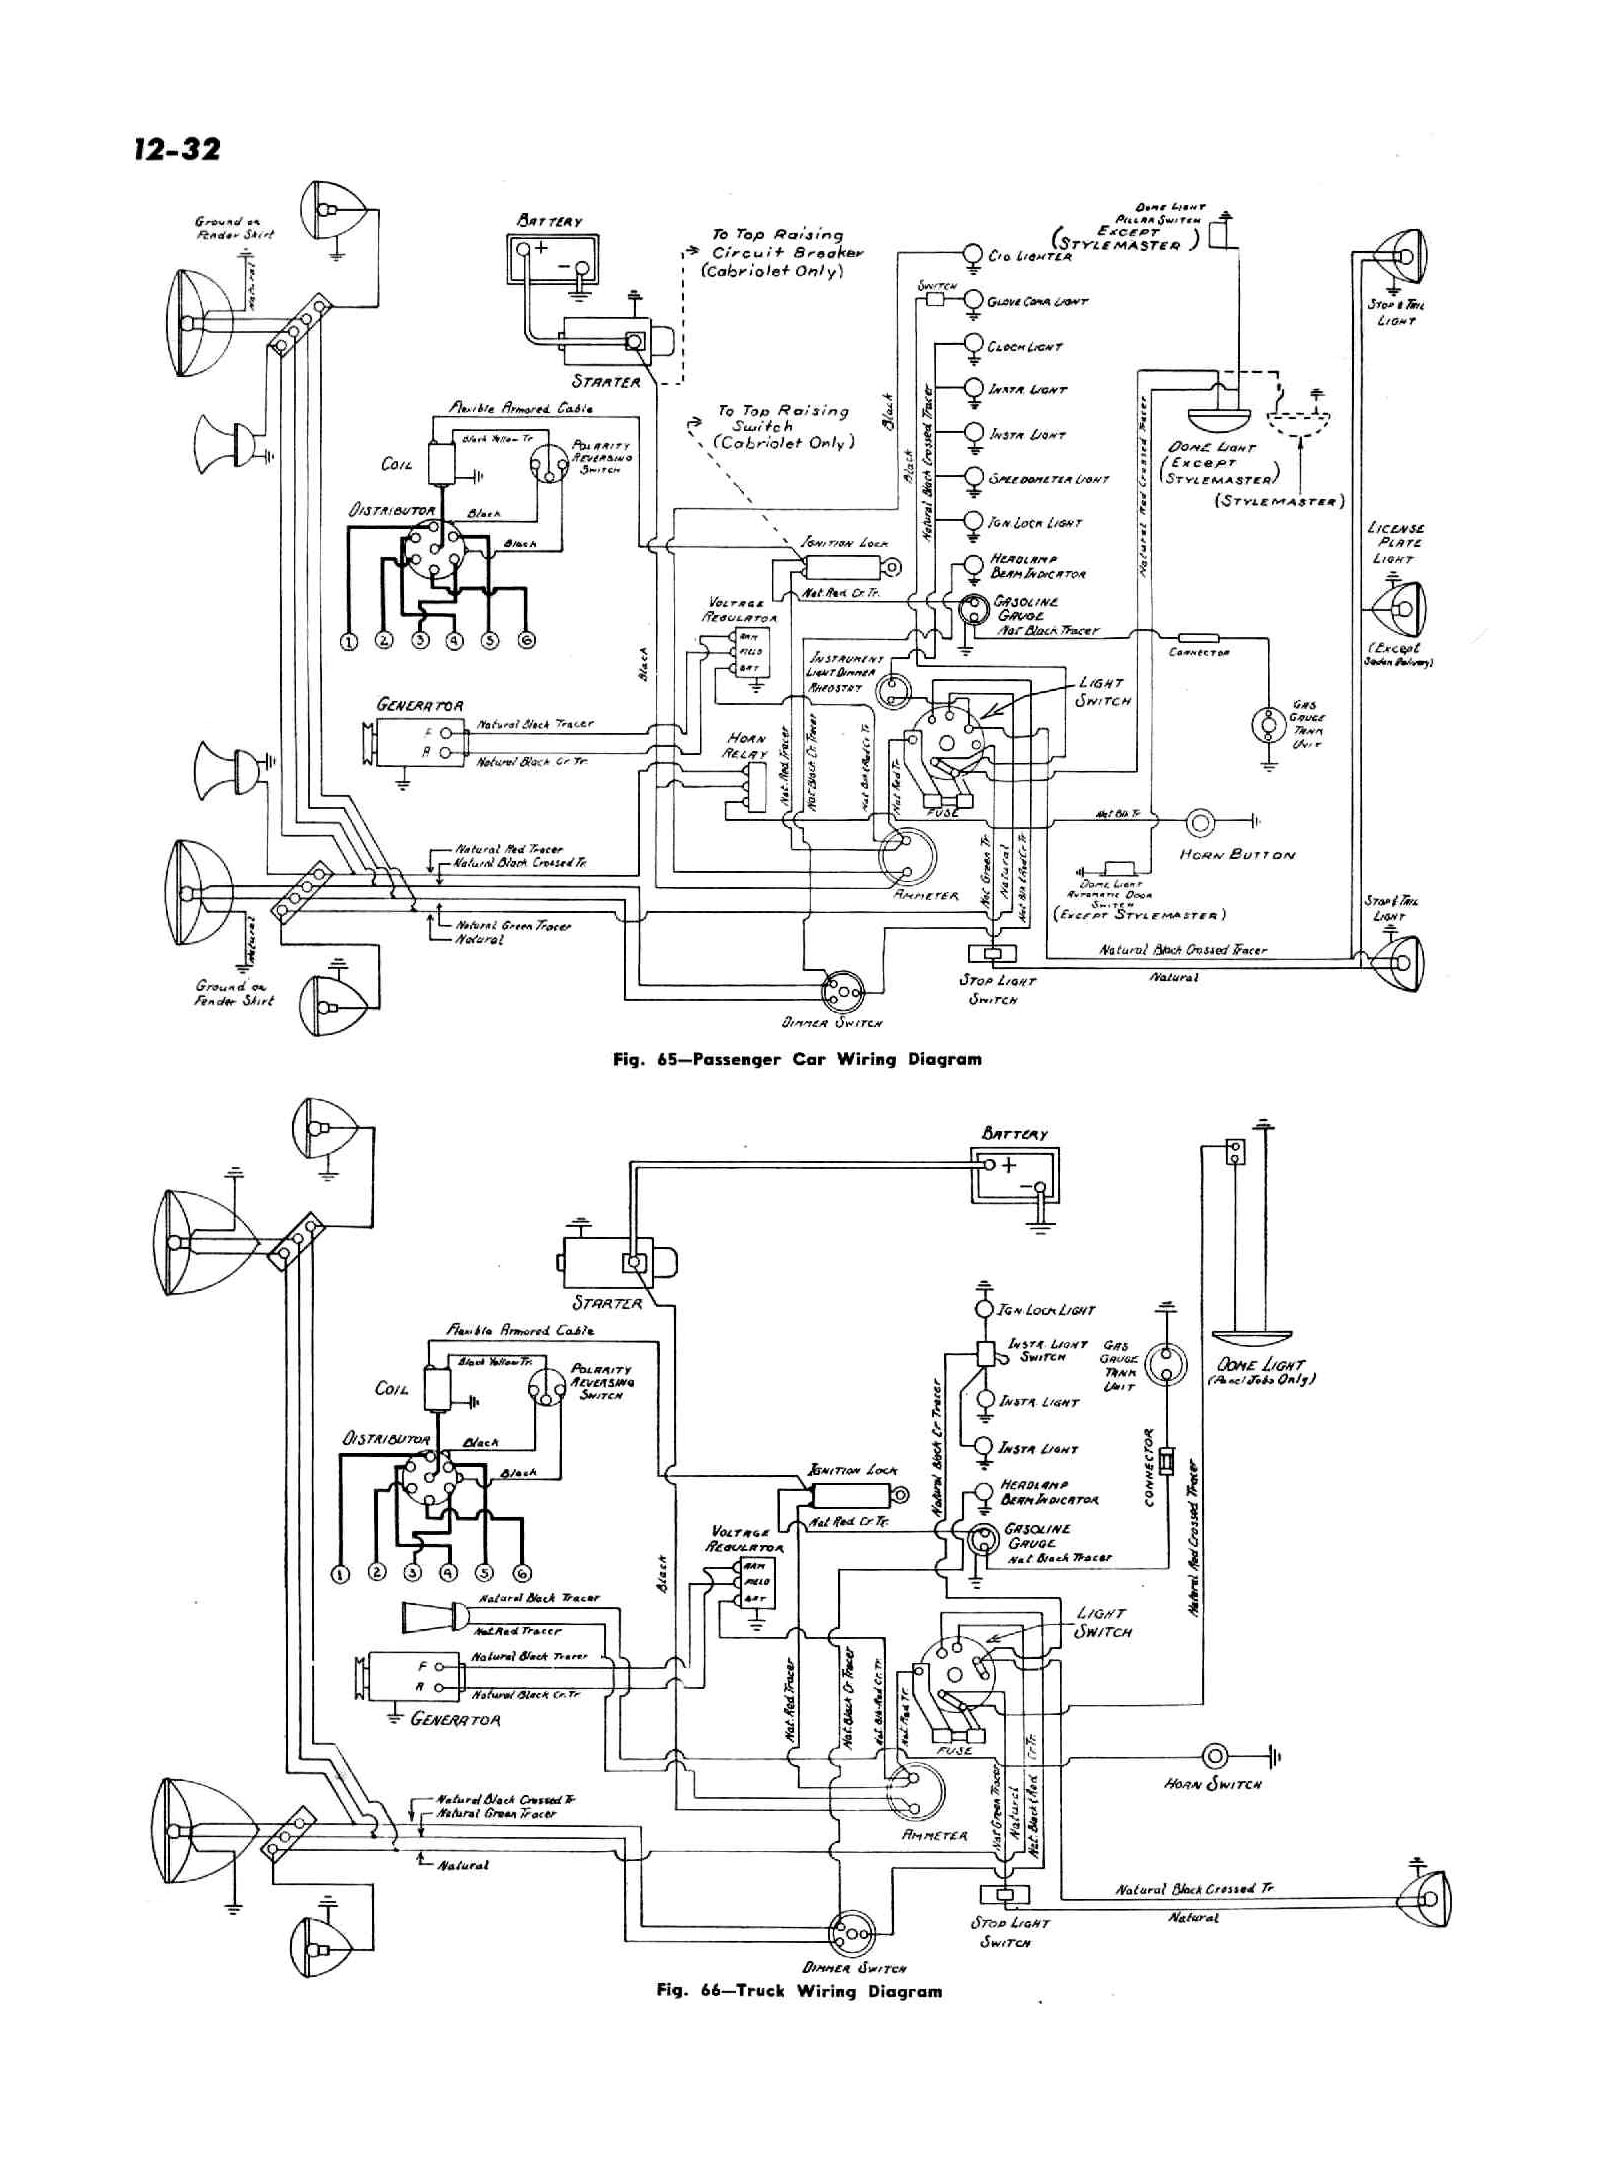 4247csm1232 chevy wiring diagrams 58 corvette wiring diagram at soozxer.org